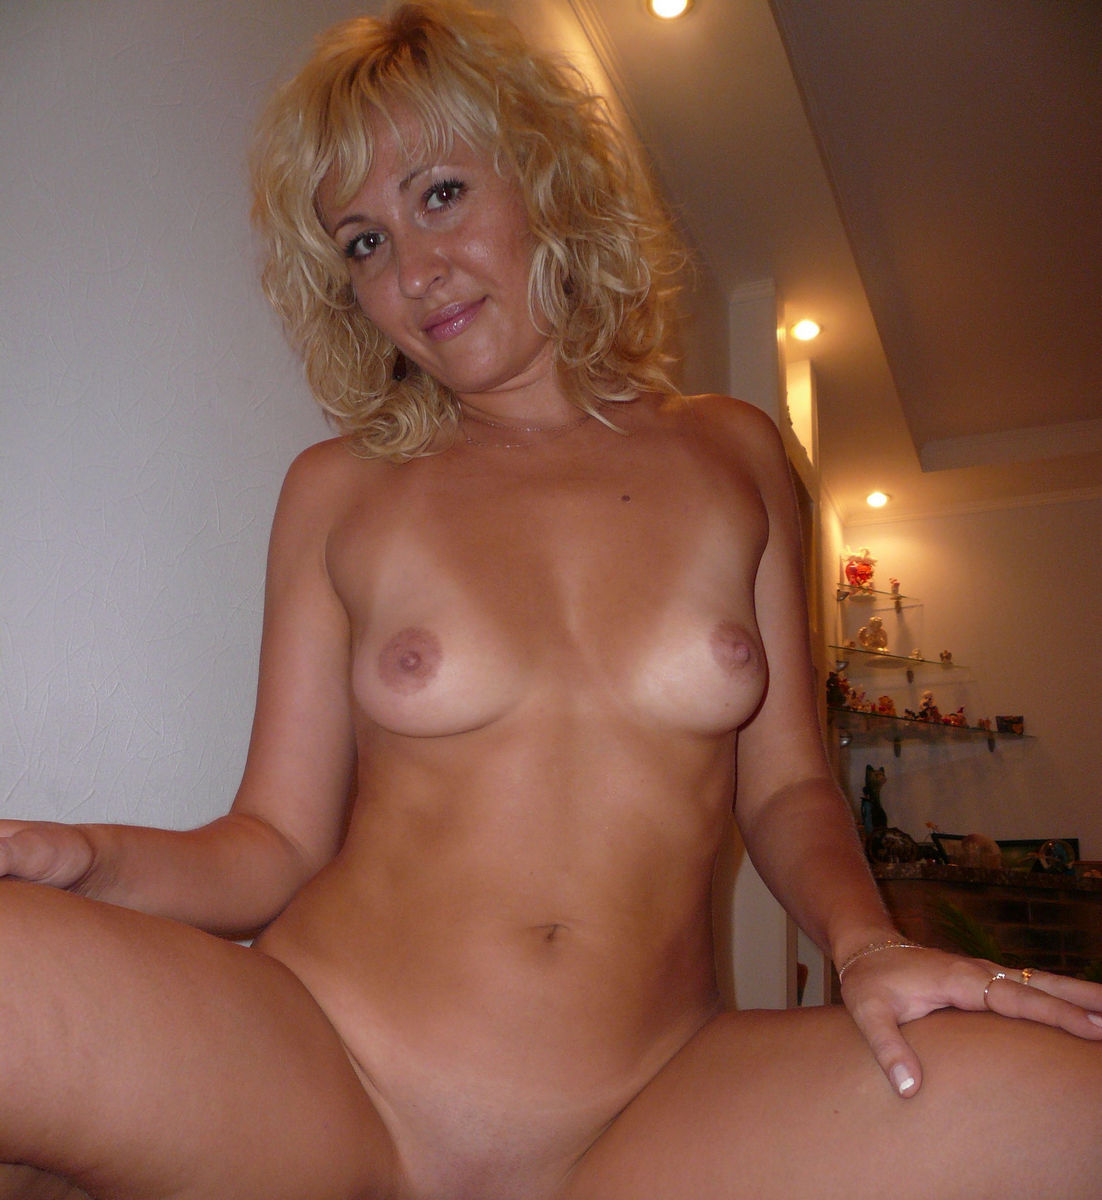 Hard nipple woman nude